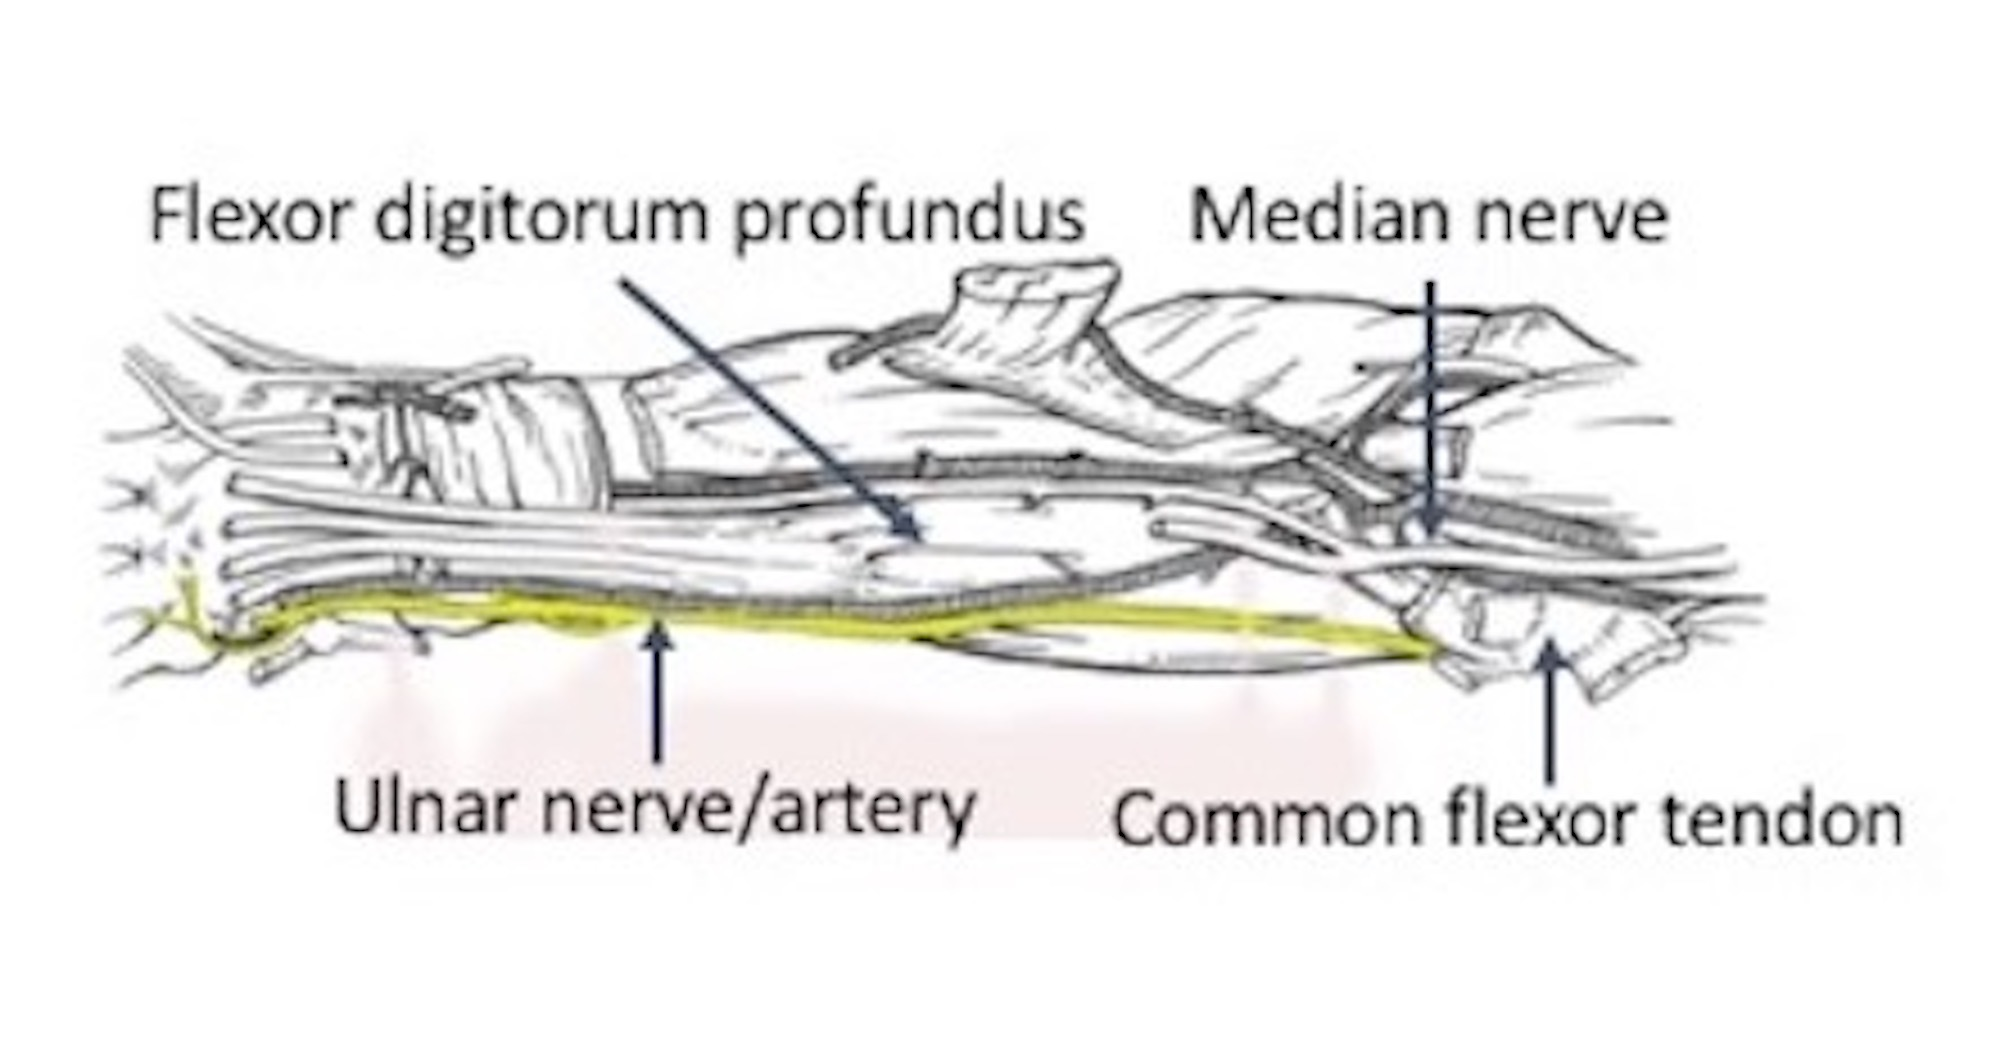 Cureus | The Deep Fascia of the Forearm and the Ulnar Nerve